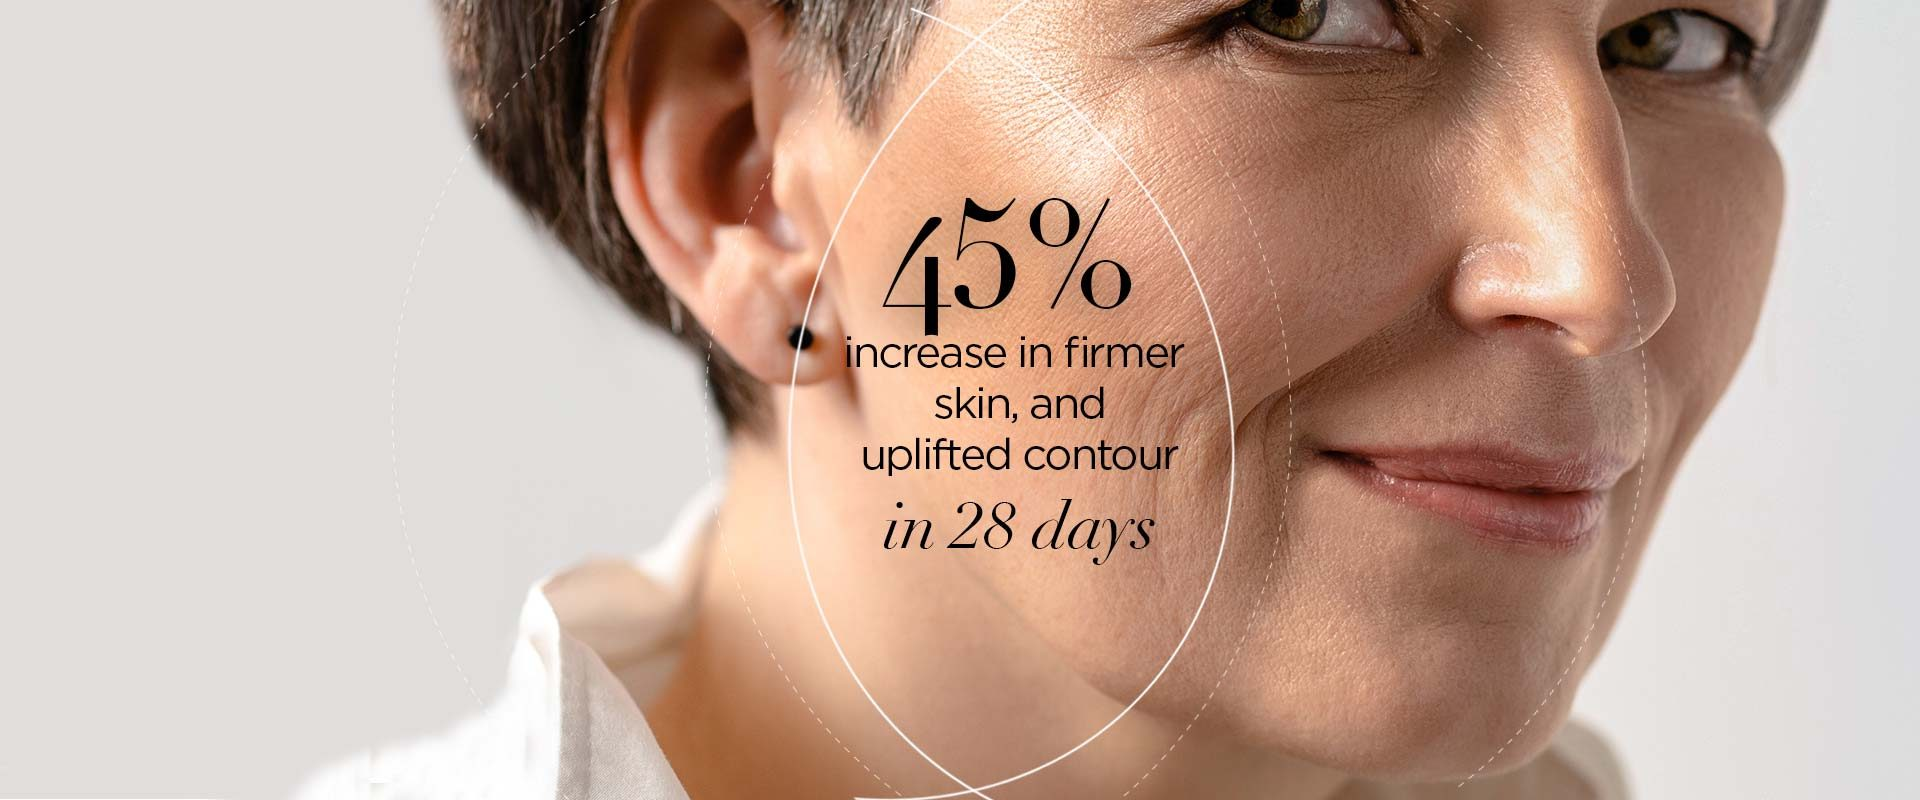 45%-Increase-in-results-in-28-days-lift-sculpt